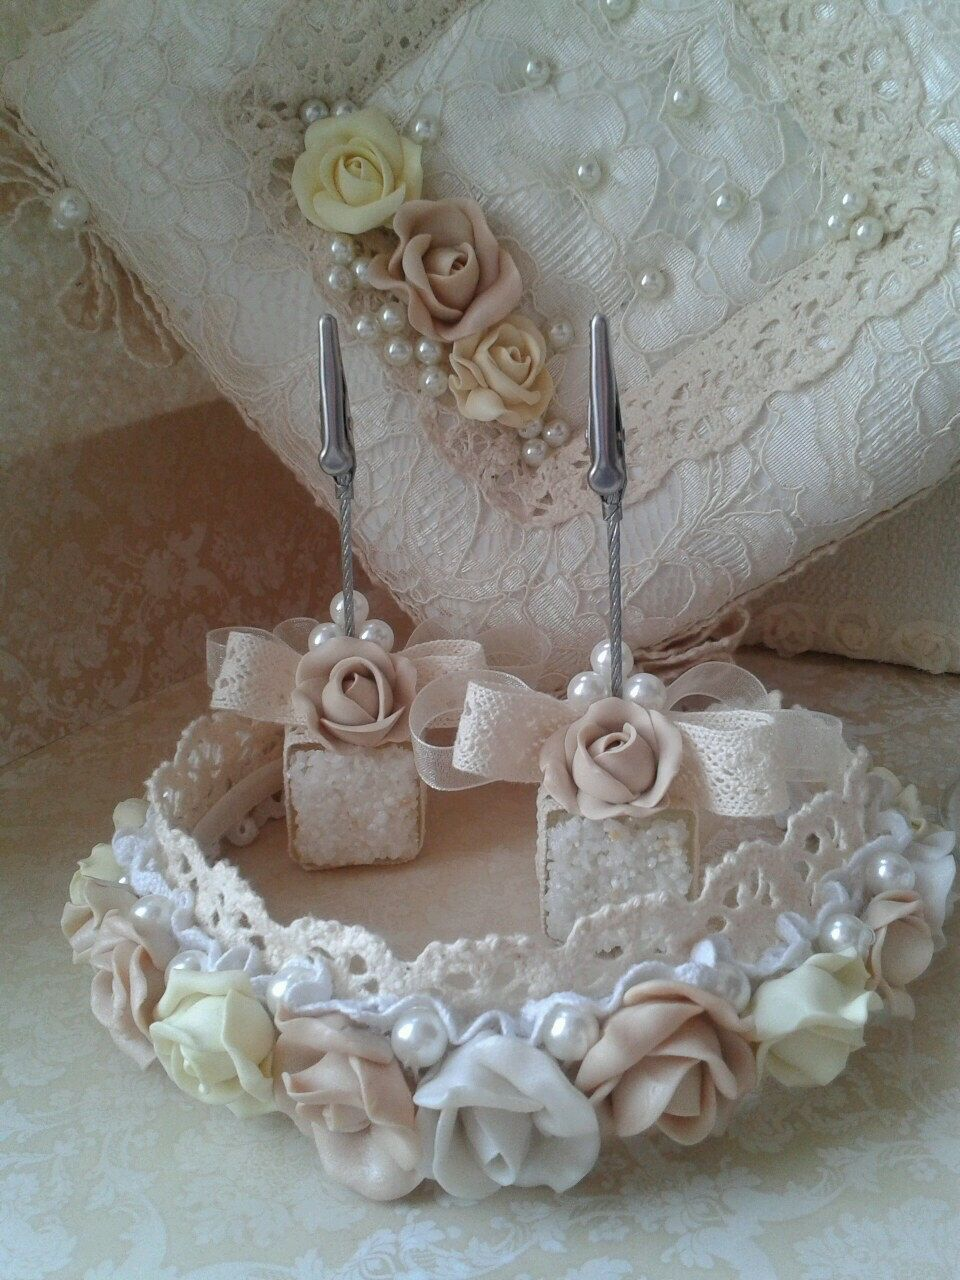 Wedding Place Card Holder Set of 2  from ALORNA Collection by AVRORAandALORNA on Etsy https://www.etsy.com/listing/227808907/wedding-place-card-holder-set-of-2-from